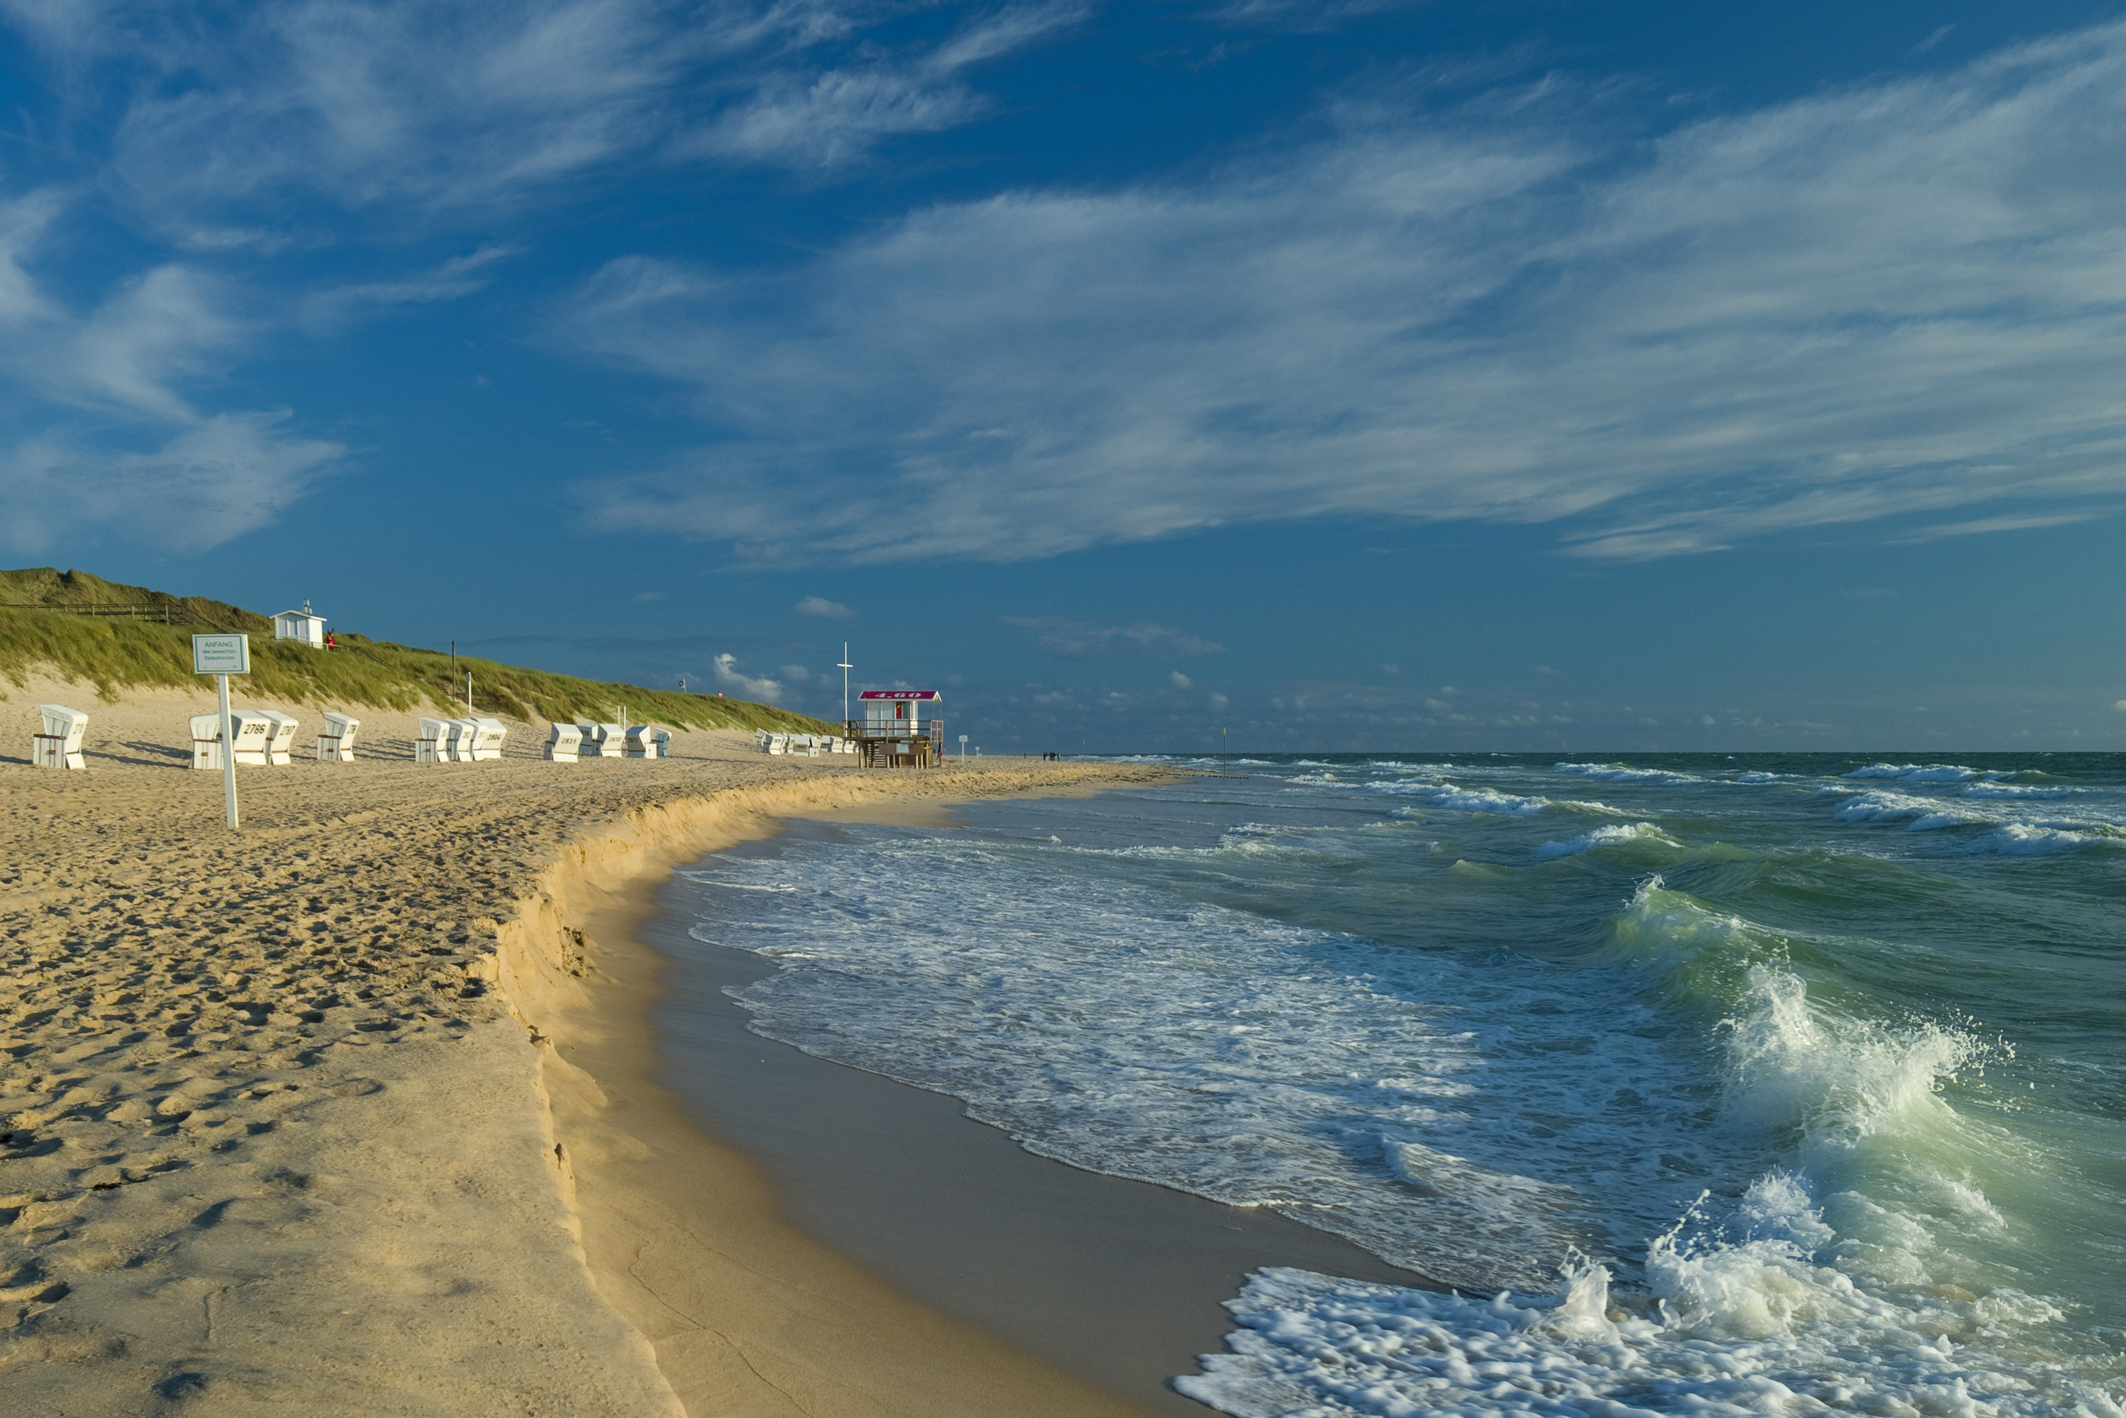 Beach at Westerland, Sylt